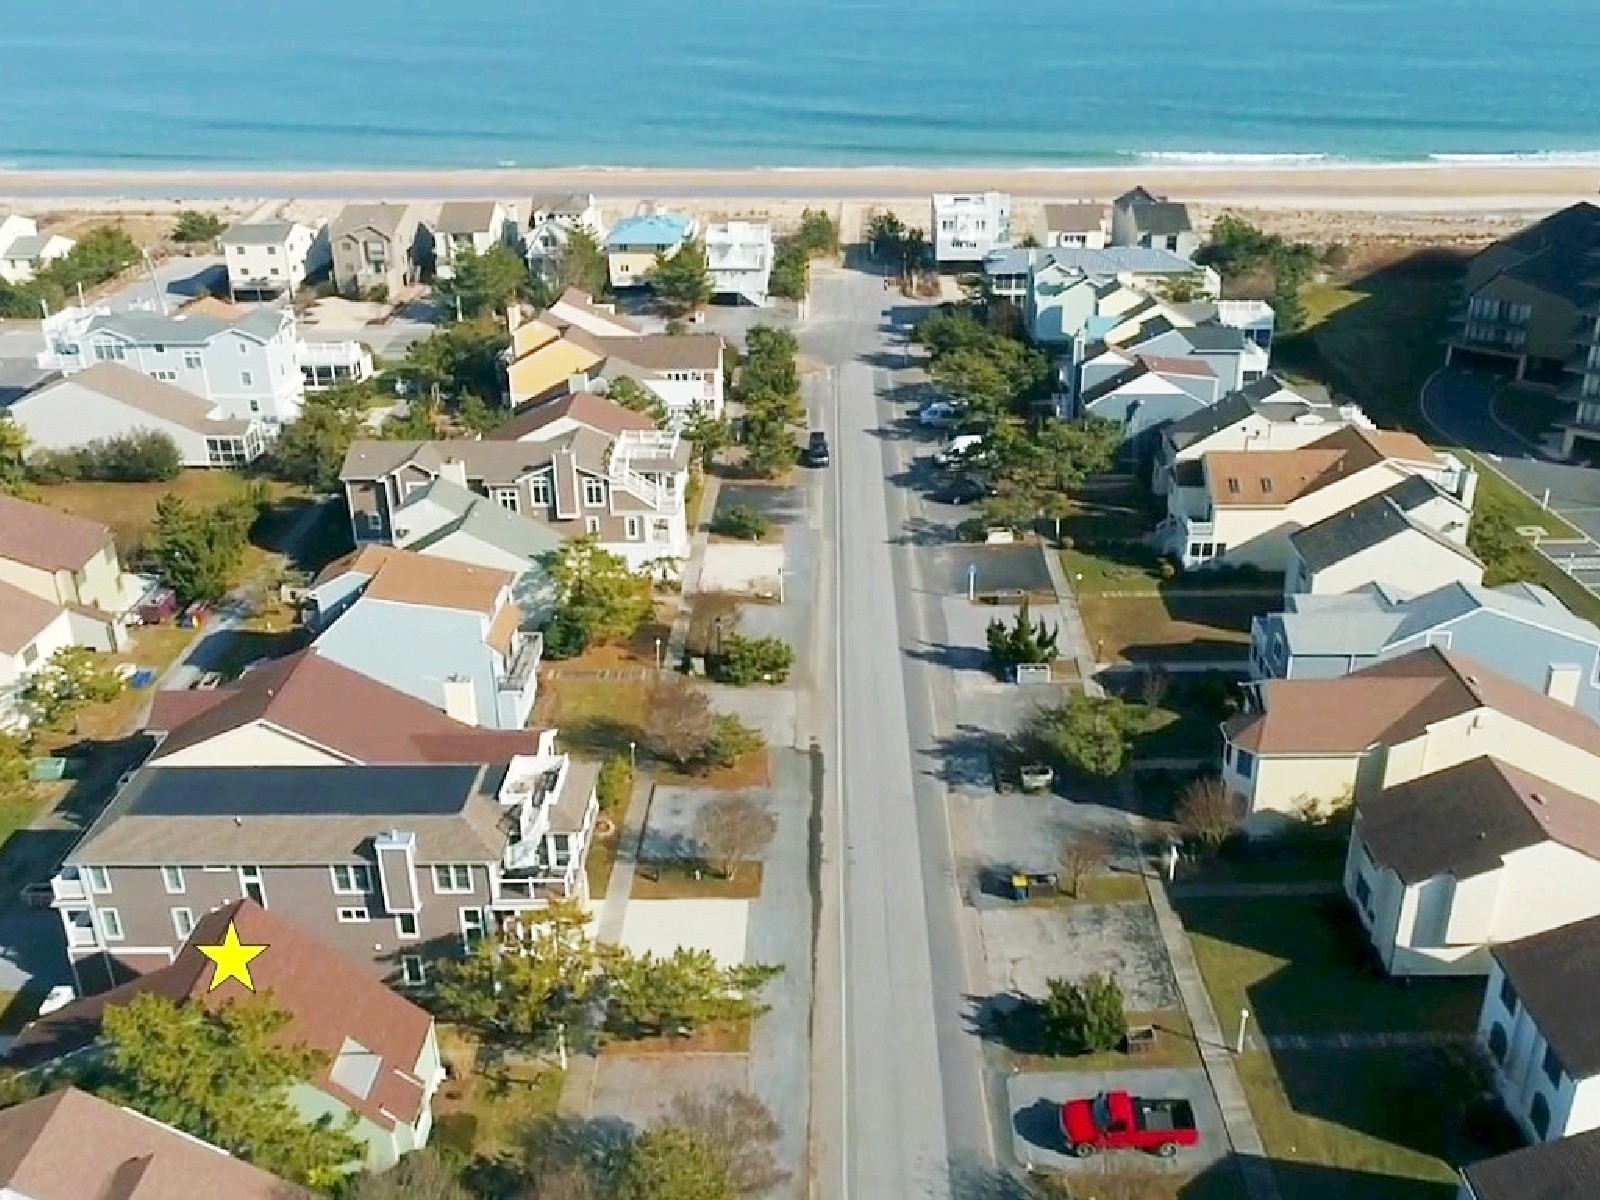 Single Family Home for Sale at 119 Cedarwood Street , Bethany Beach, DE 19930 119 Cedarwood Street Bethany Beach, Delaware 19930 United States